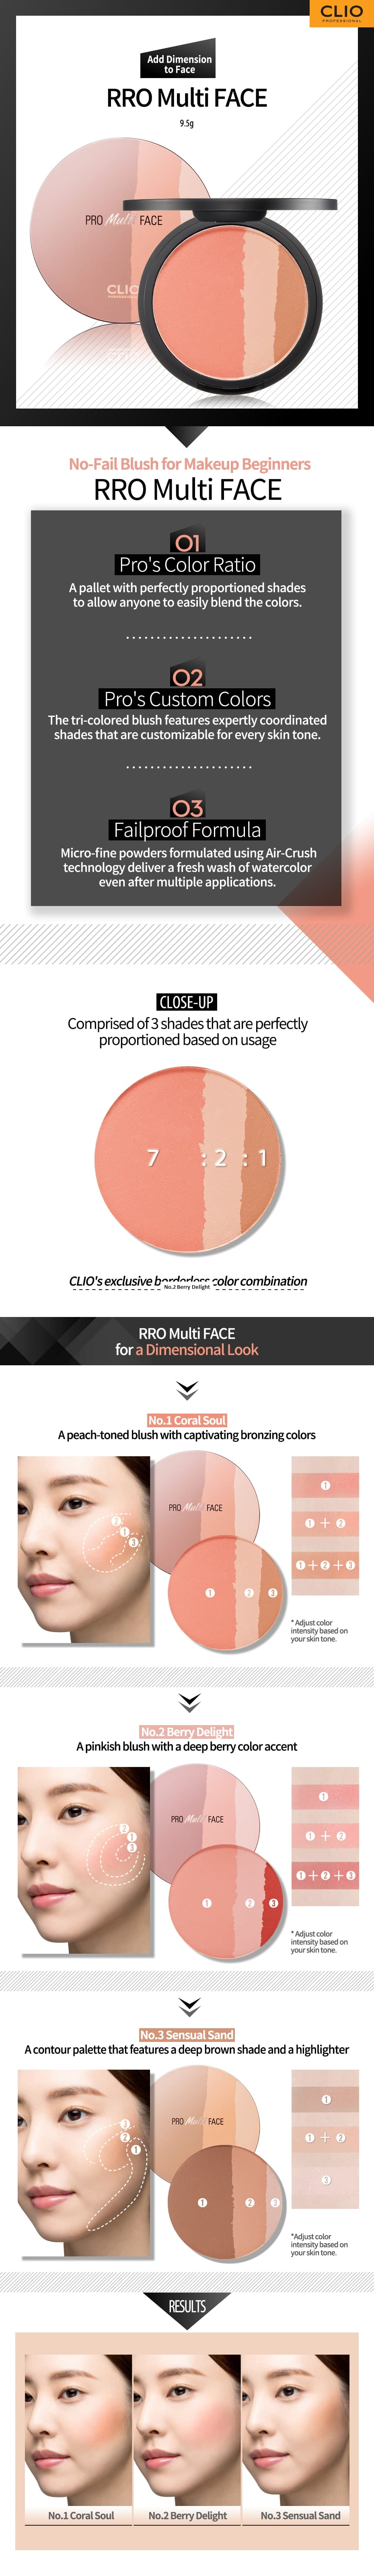 CLIO Pro Multi Face - Features